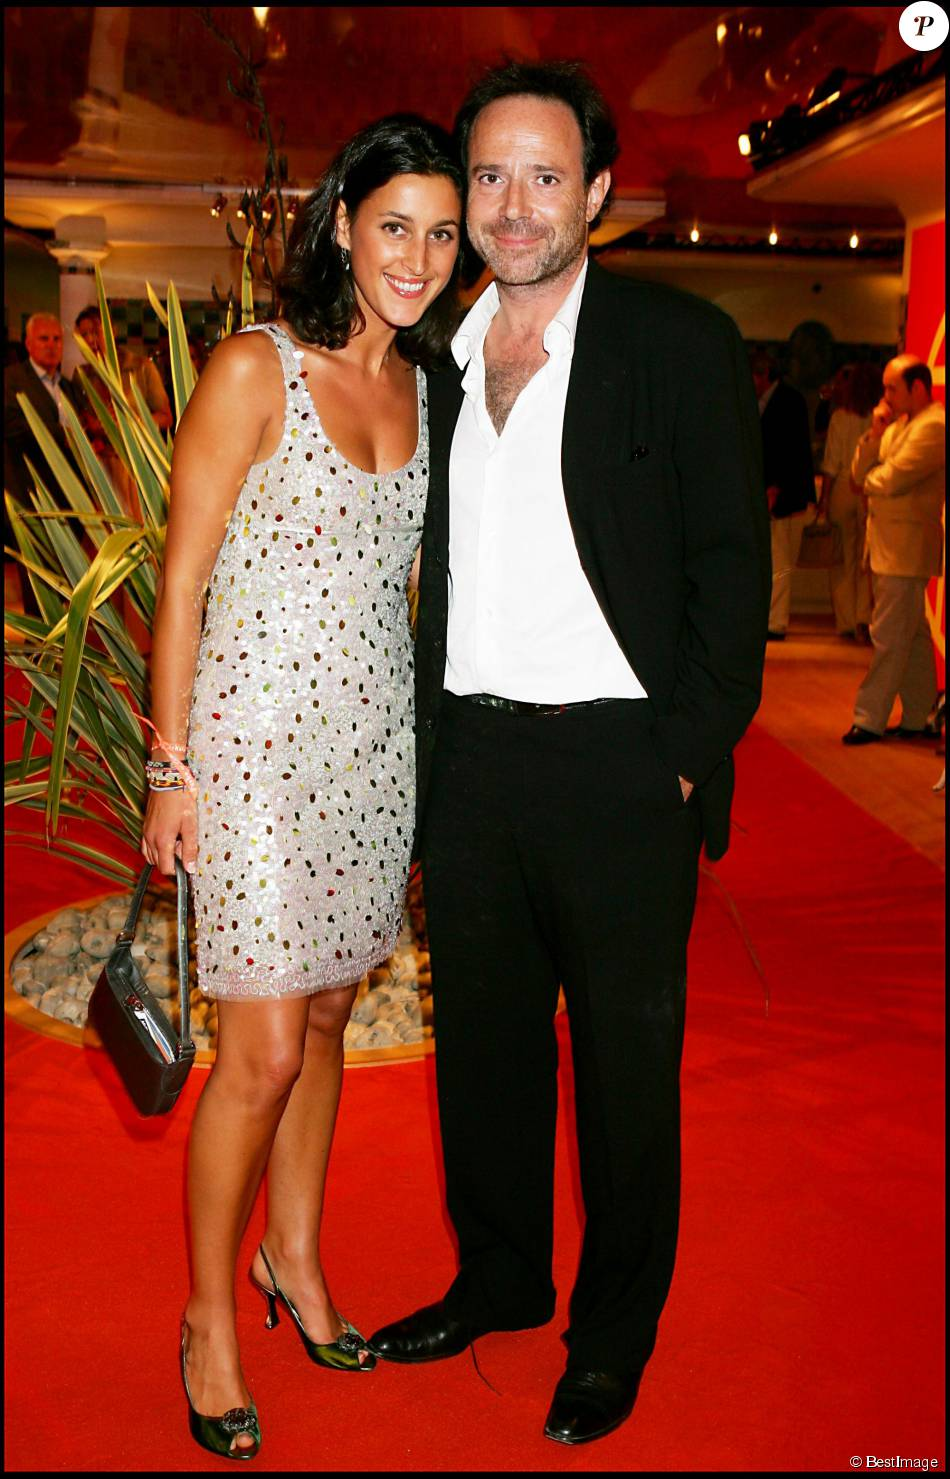 pauline l v que et marc l vy la maison cartier deauville le 3 septembre 2005 purepeople. Black Bedroom Furniture Sets. Home Design Ideas